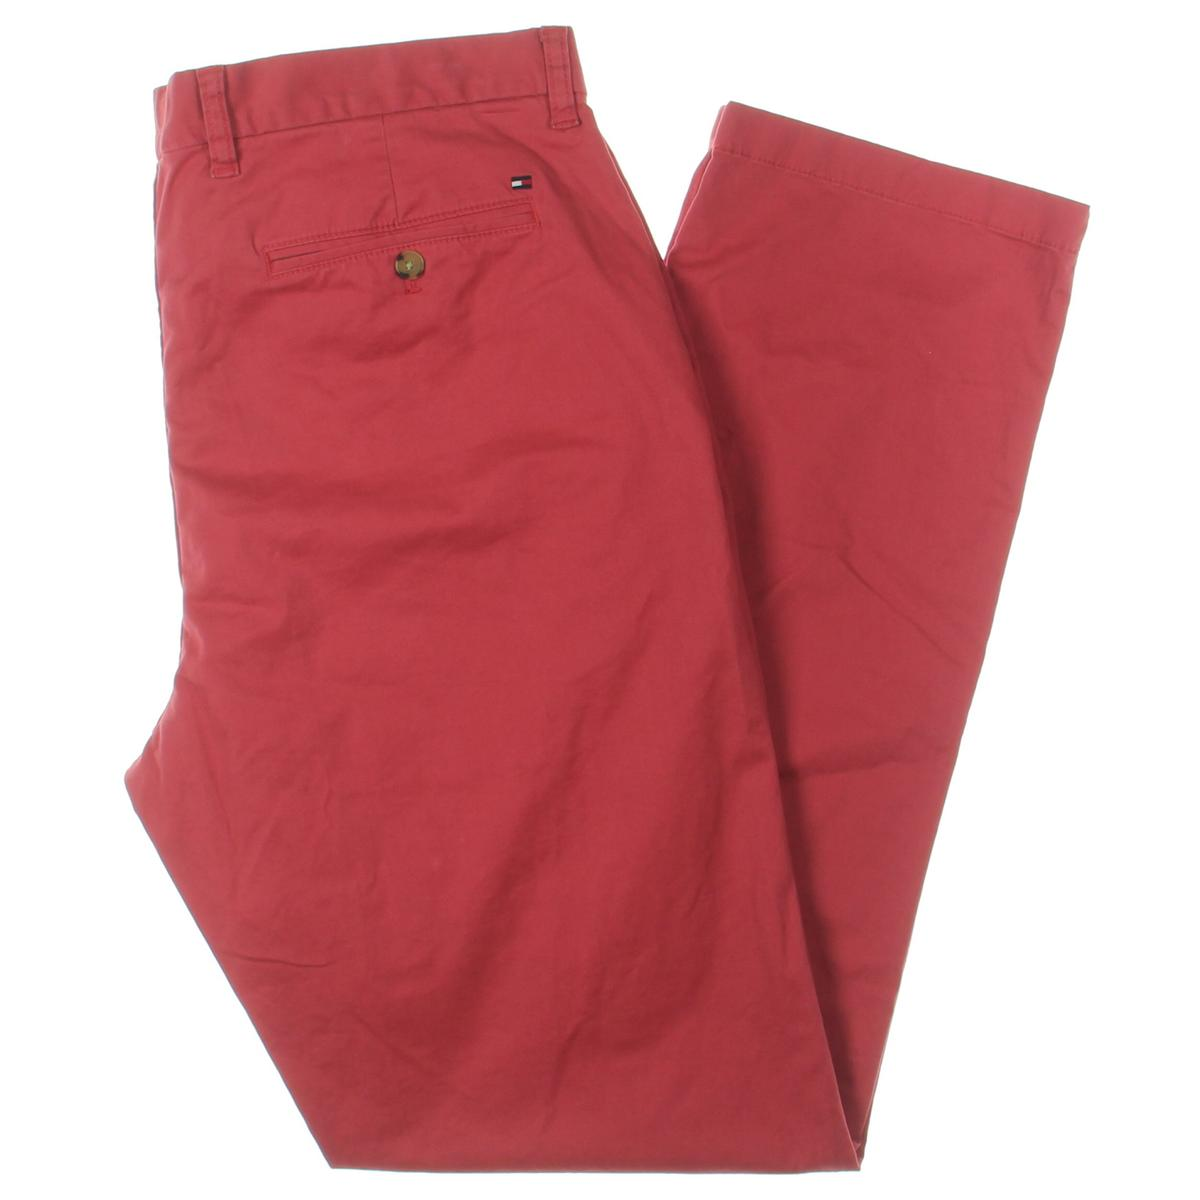 Polo Ralph Lauren Mens Straight Fit Casual Twill Chino Pants BHFO 3081